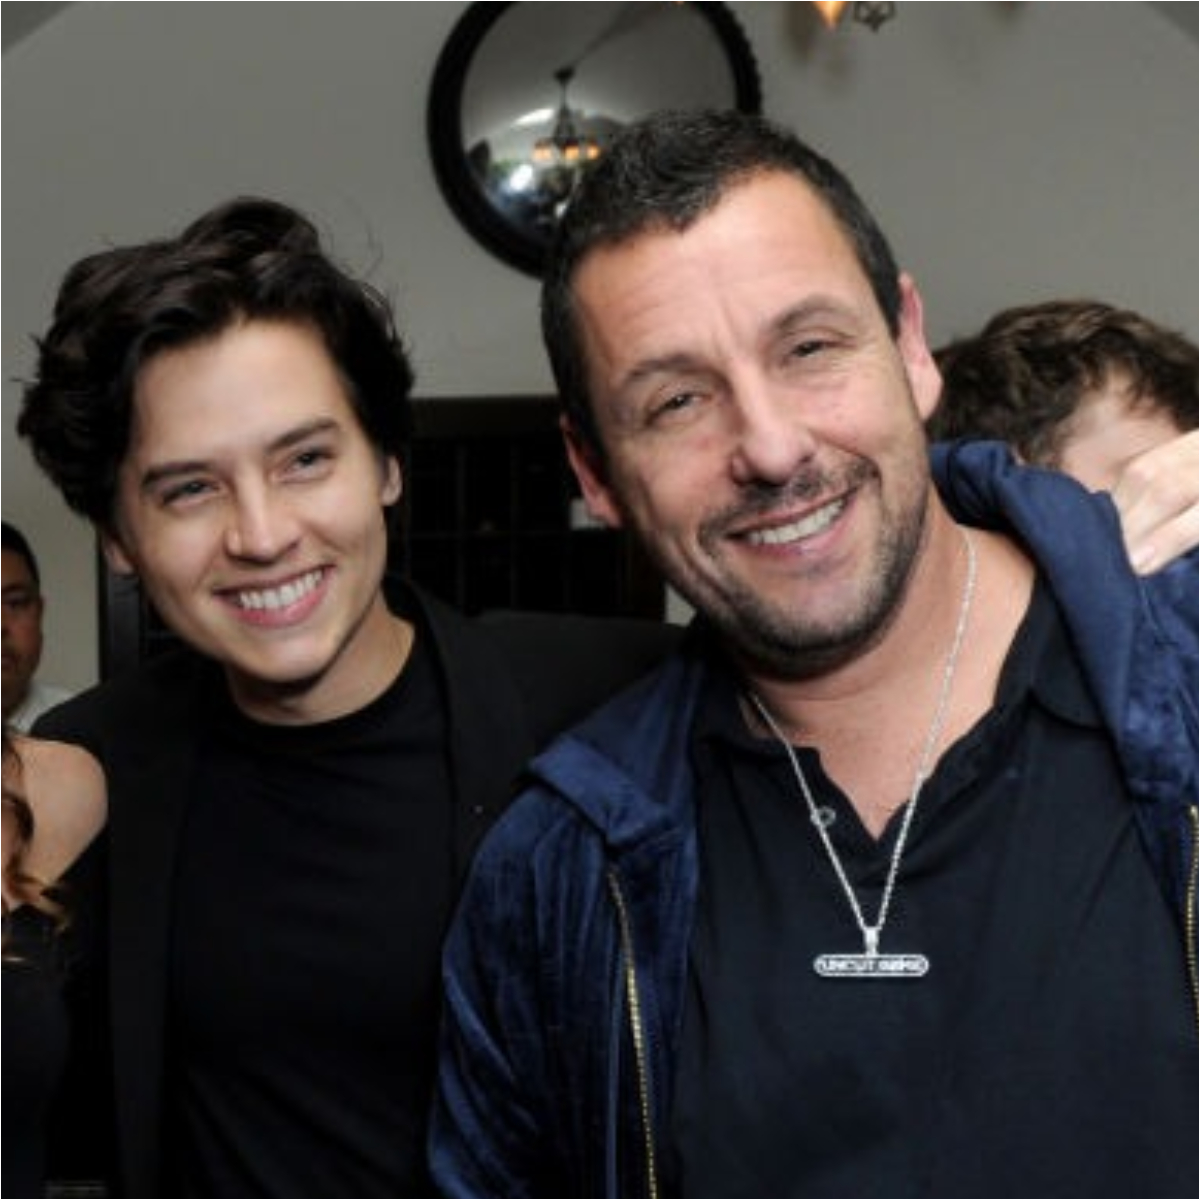 Former co stars Adam Sandler and Cole Sprouse REUNITE after 2 decades